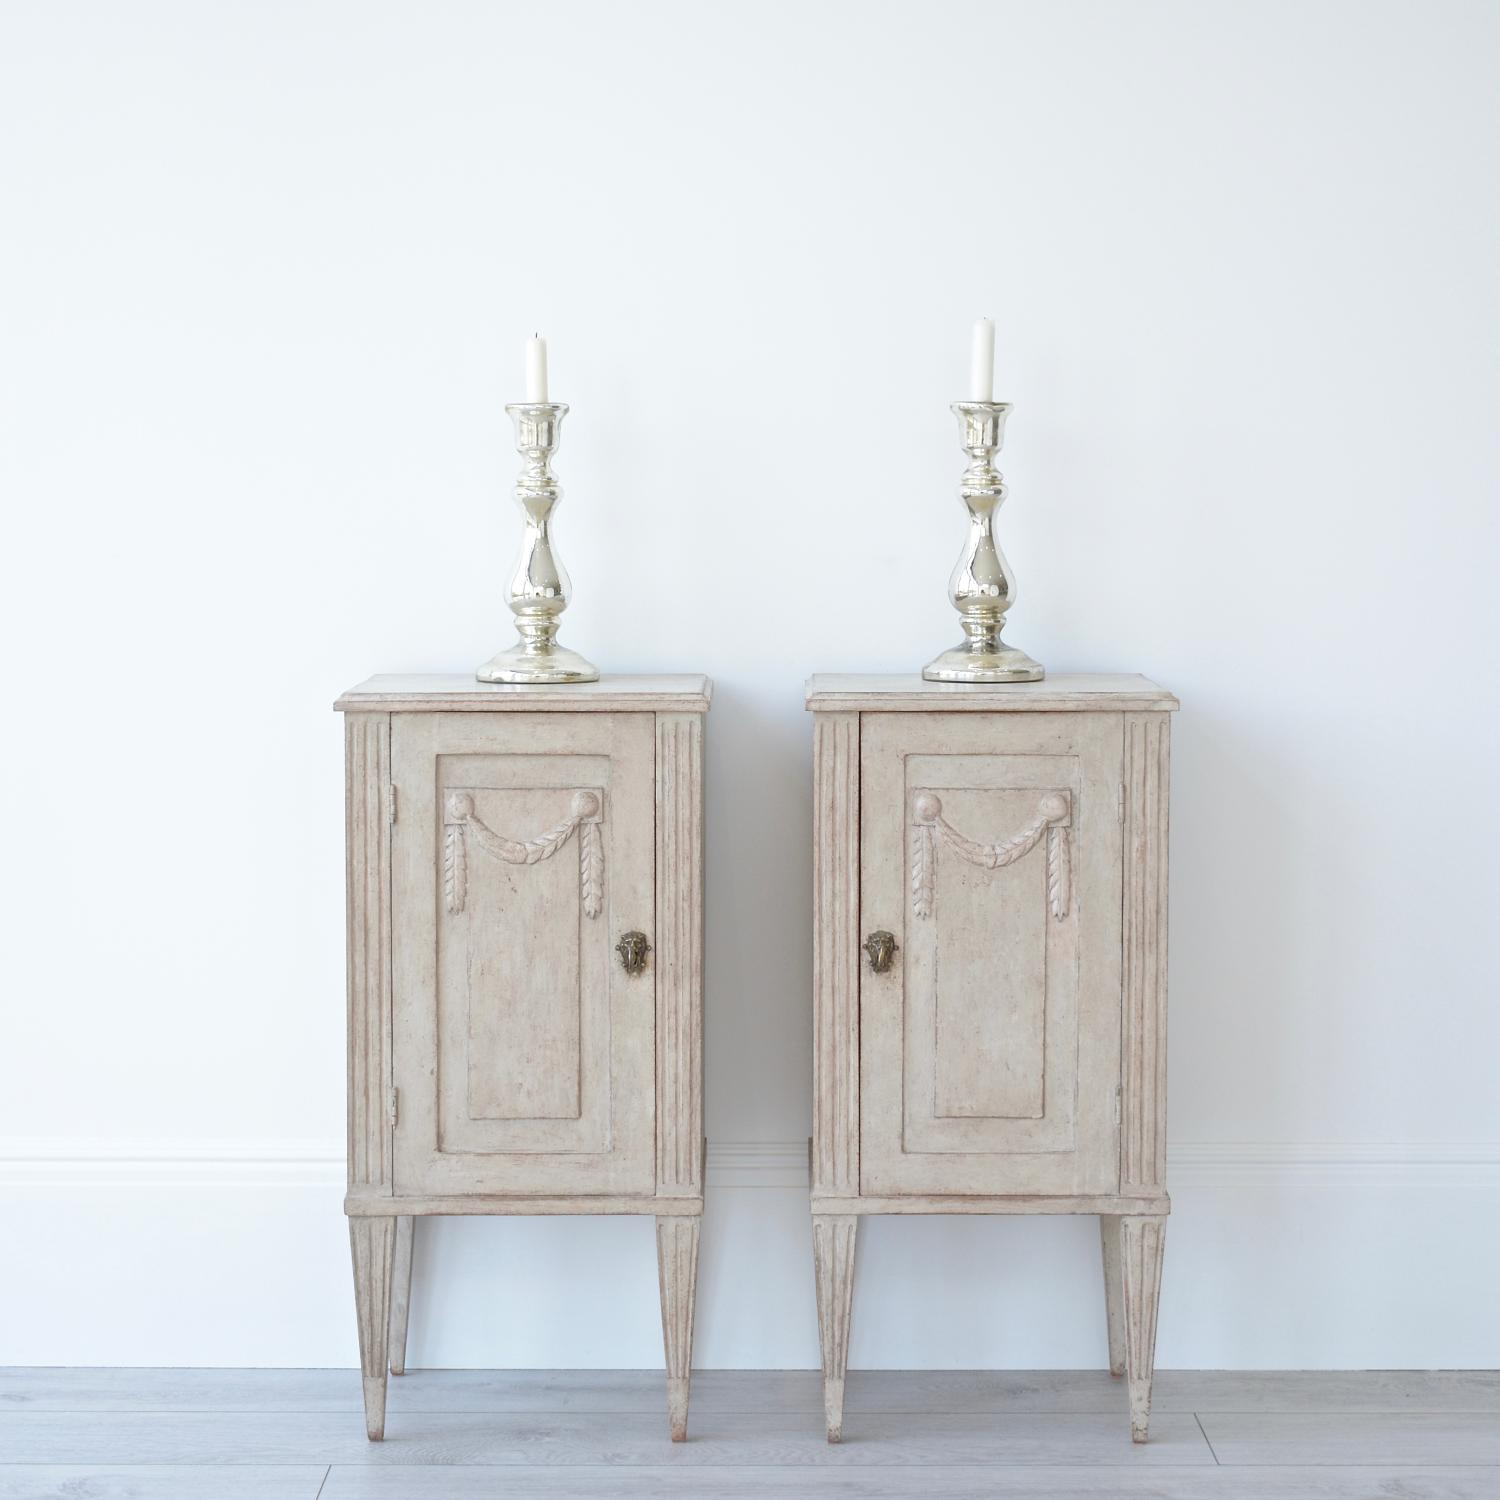 DECORATIVE PAIR OF SWEDISH GUSTAVIAN BEDSIDE CABINETS